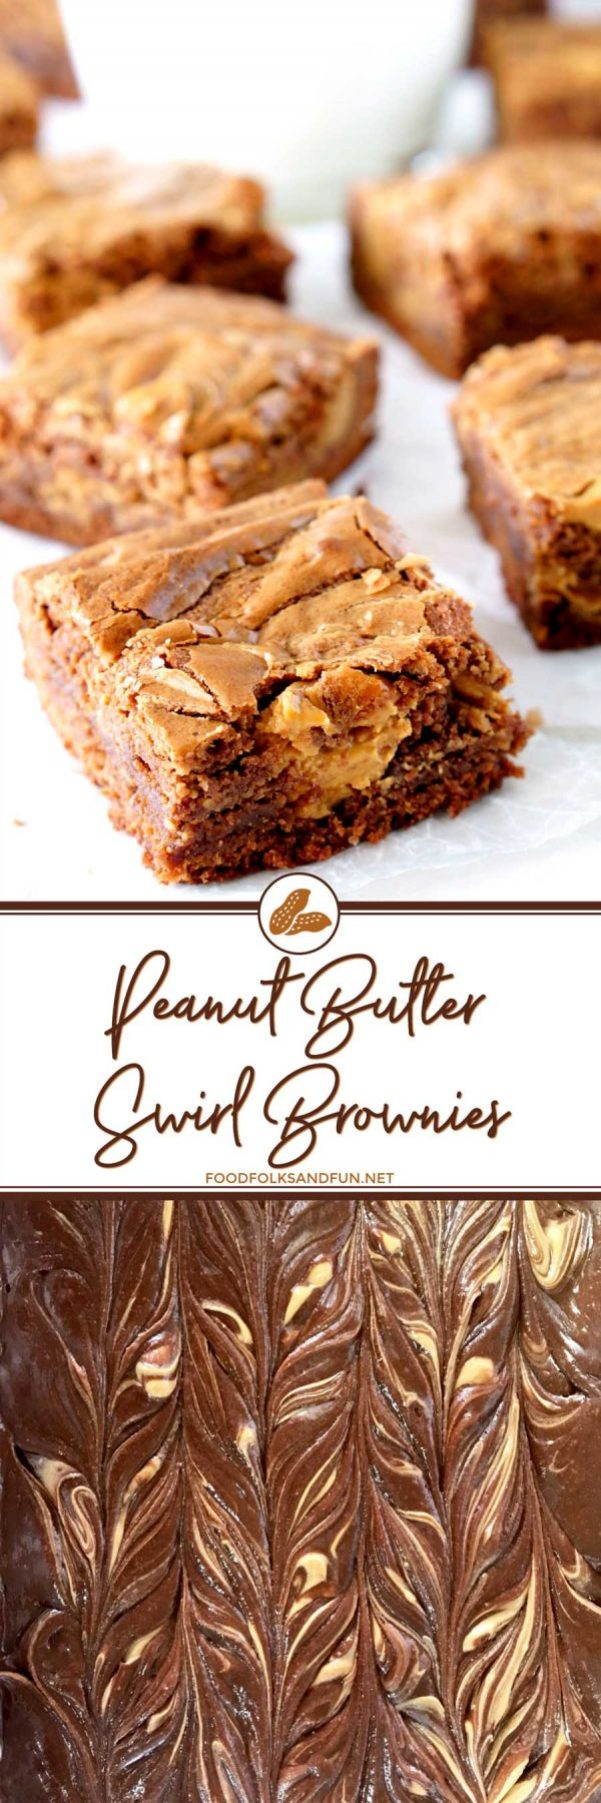 Brownie Recipe with Peanut Butter Swirl - so easy and SO good!